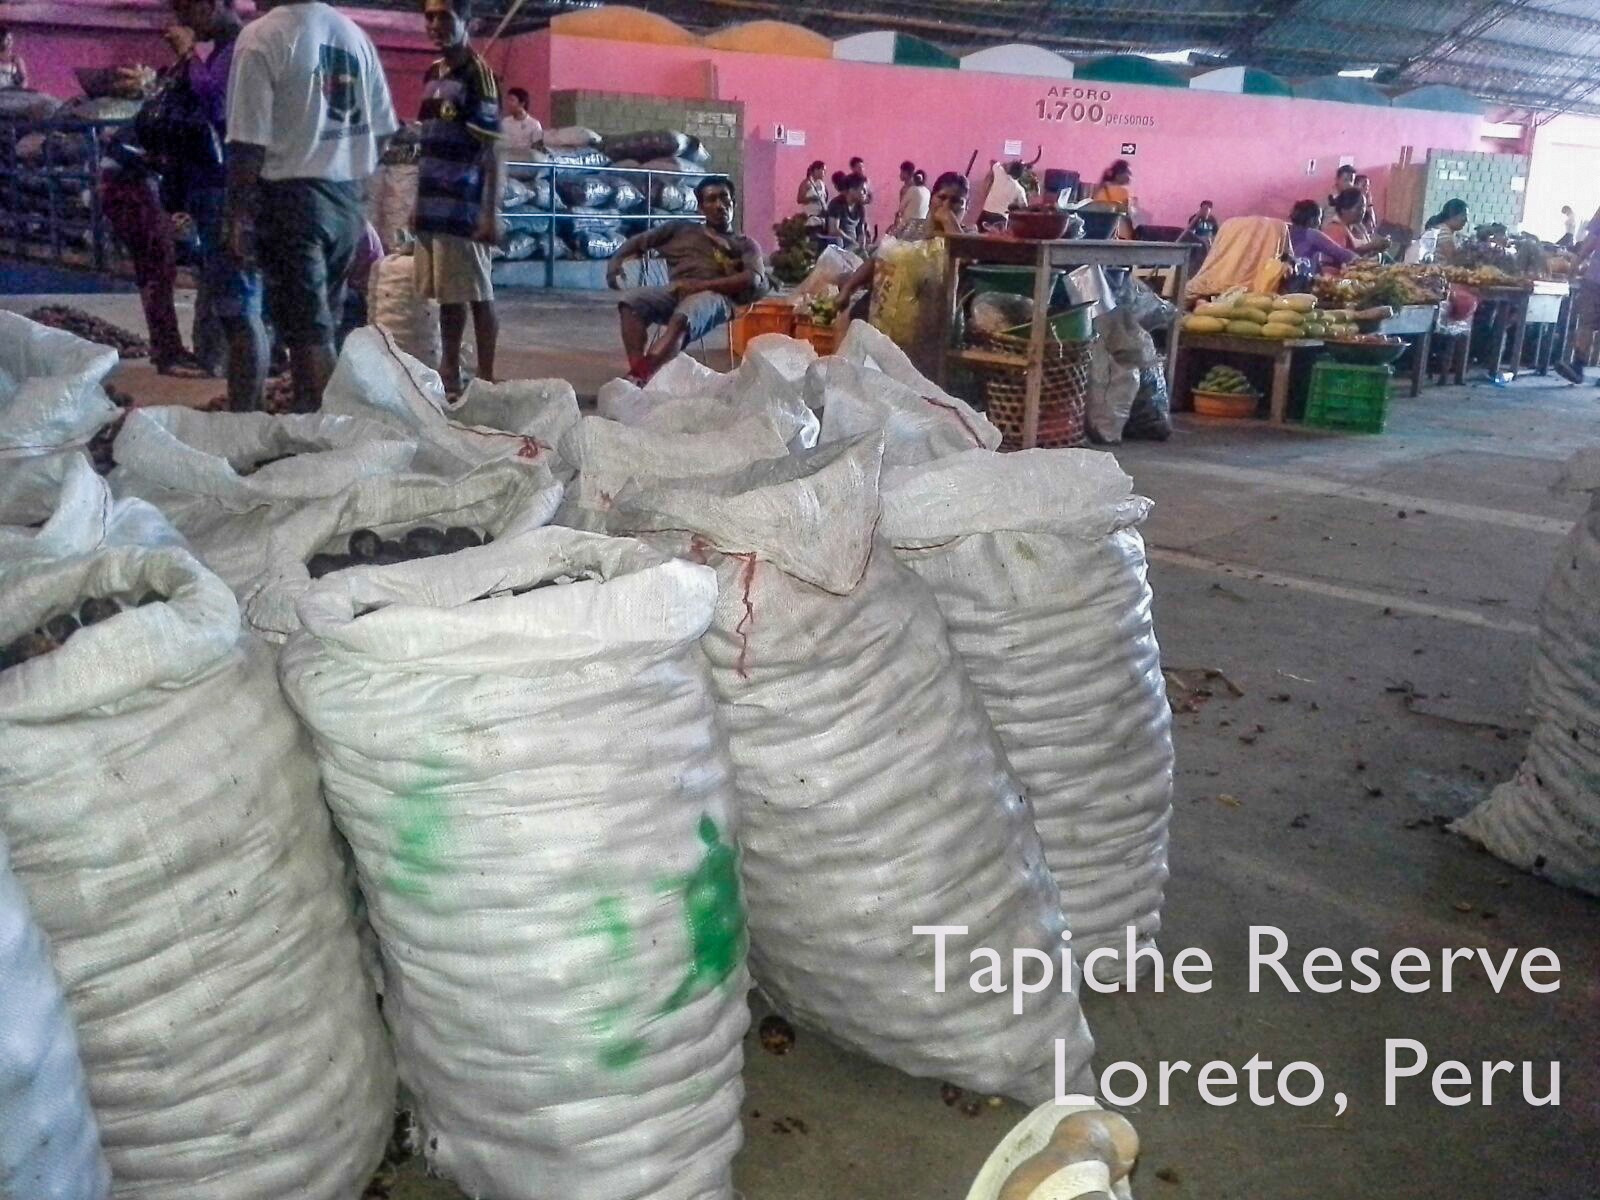 Aguaje fruits sustainably harvested from Tapiche Reserve being sold at the Mercado de Productores in Iquitos, Peru